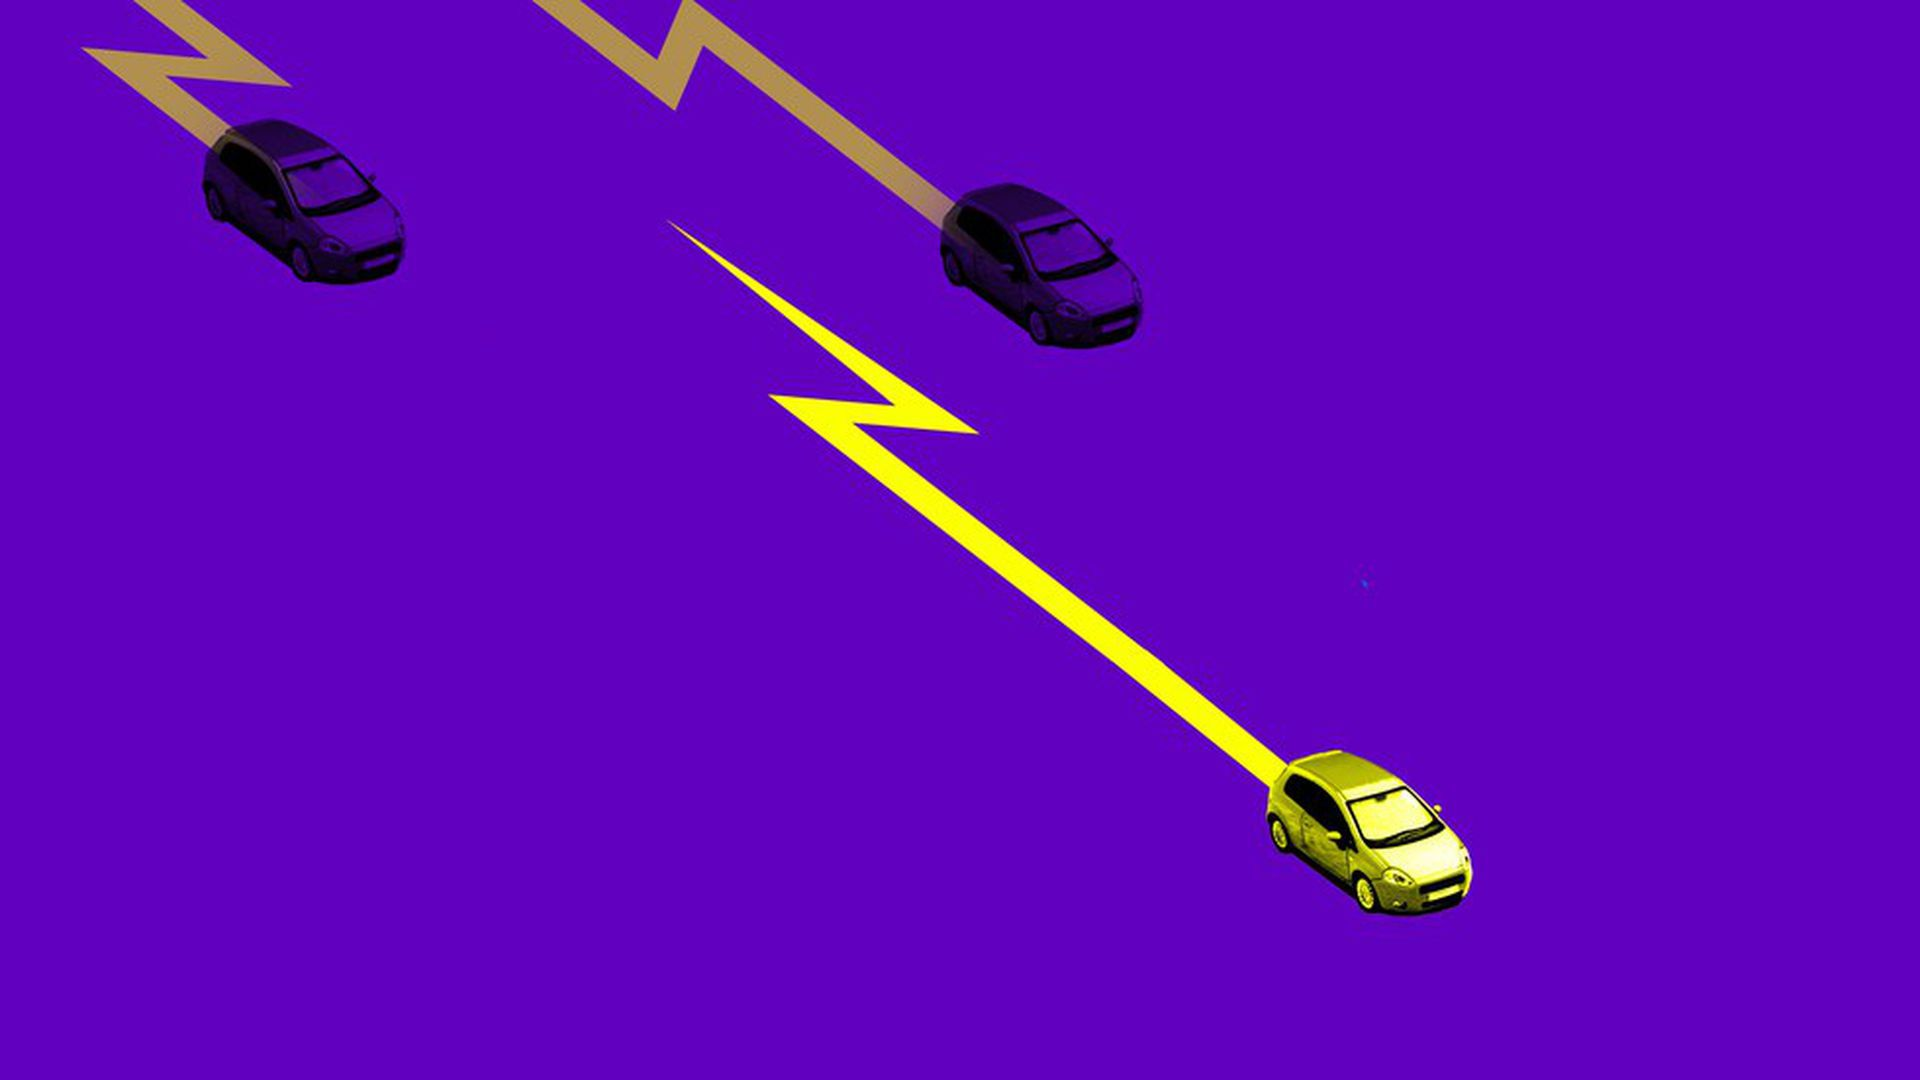 Illustration for electric vehicle item